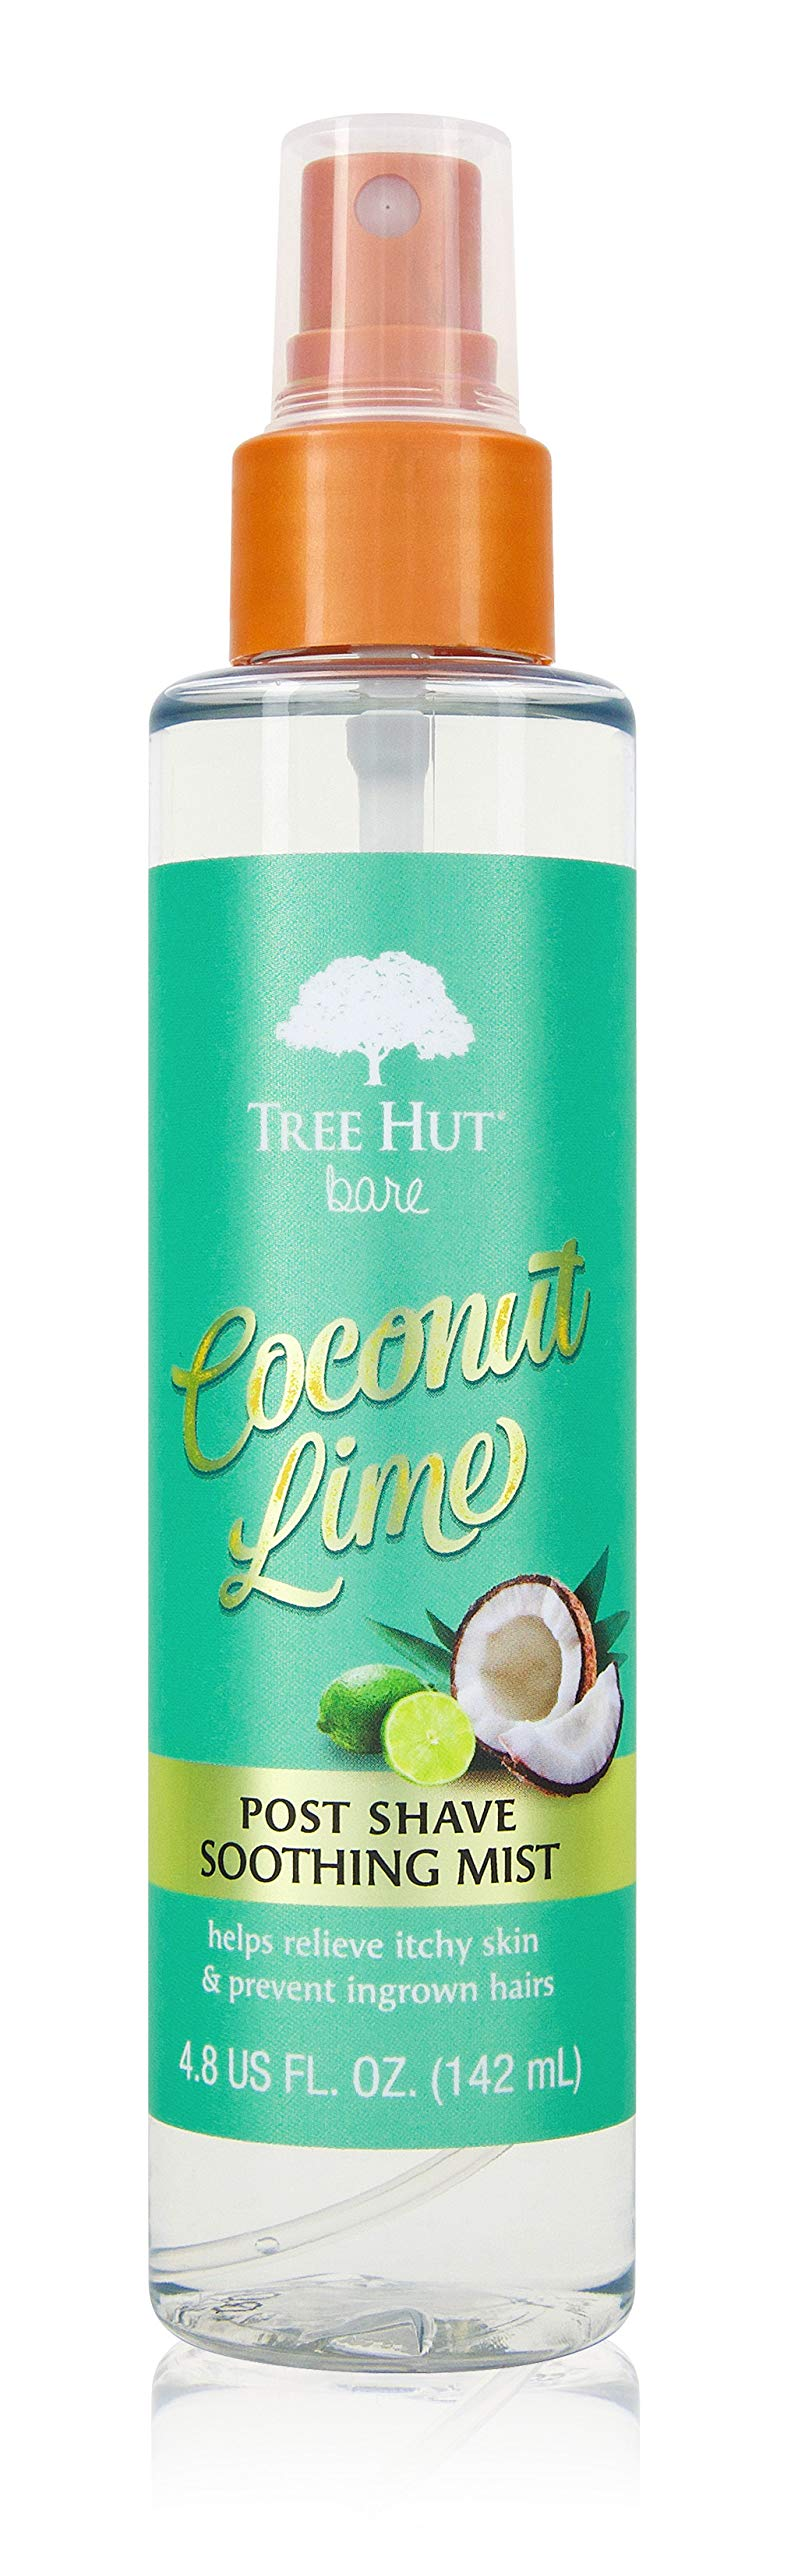 Tree Hut Bare Coconut Lime Post Shave Mist, 4.8 fl oz, After Shave Spray, Soothe & Smooth Against Razor Bumps & Ingrown Hairs, For All Skin Types